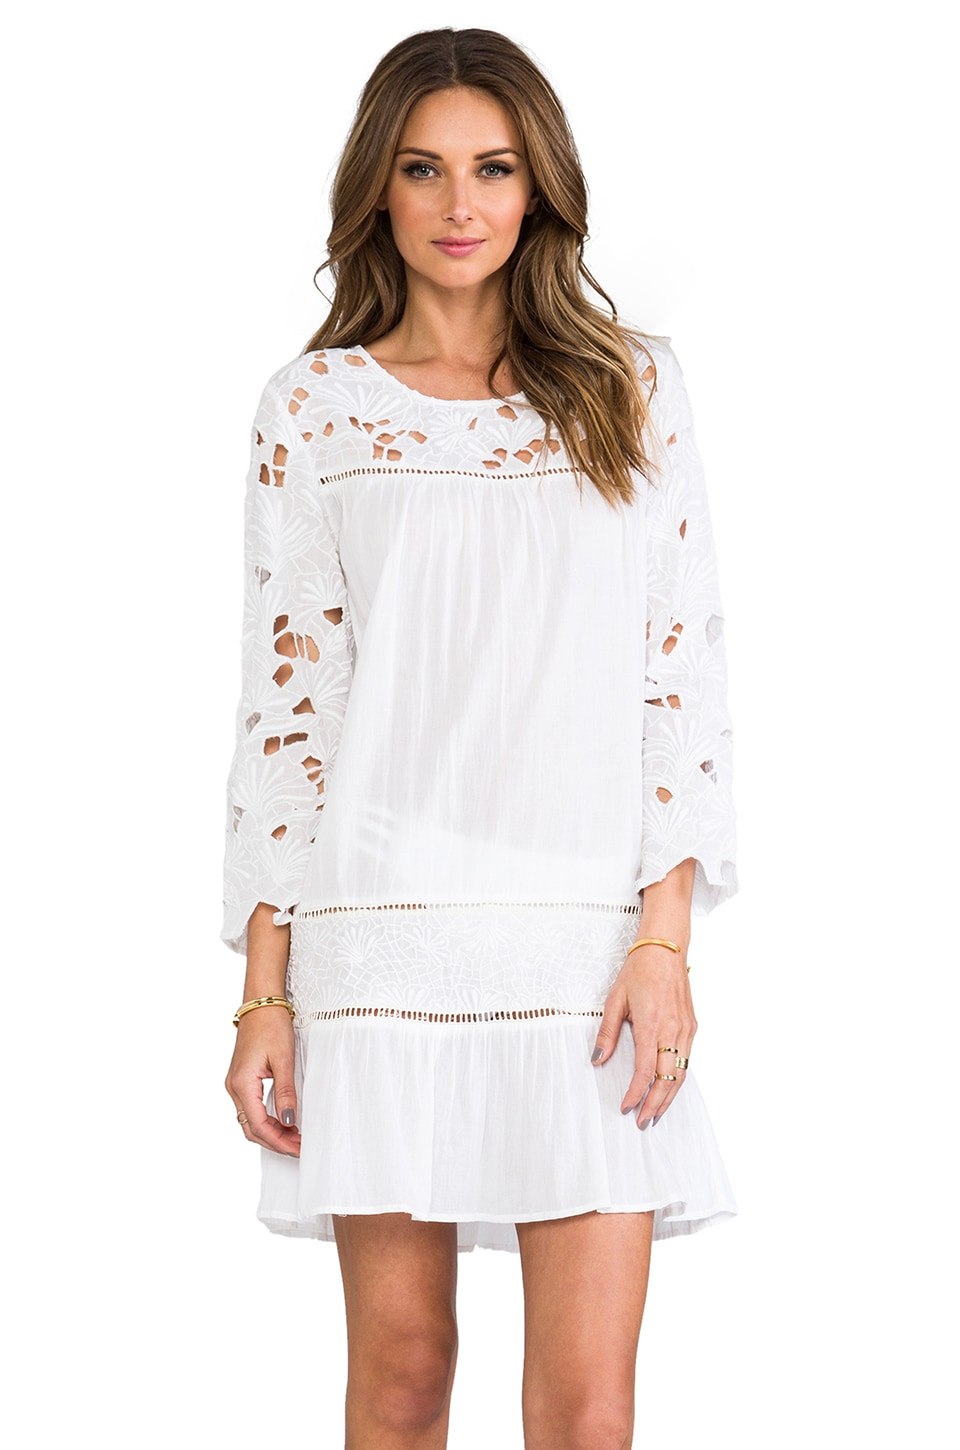 Basta Surf Martinique Dress in White